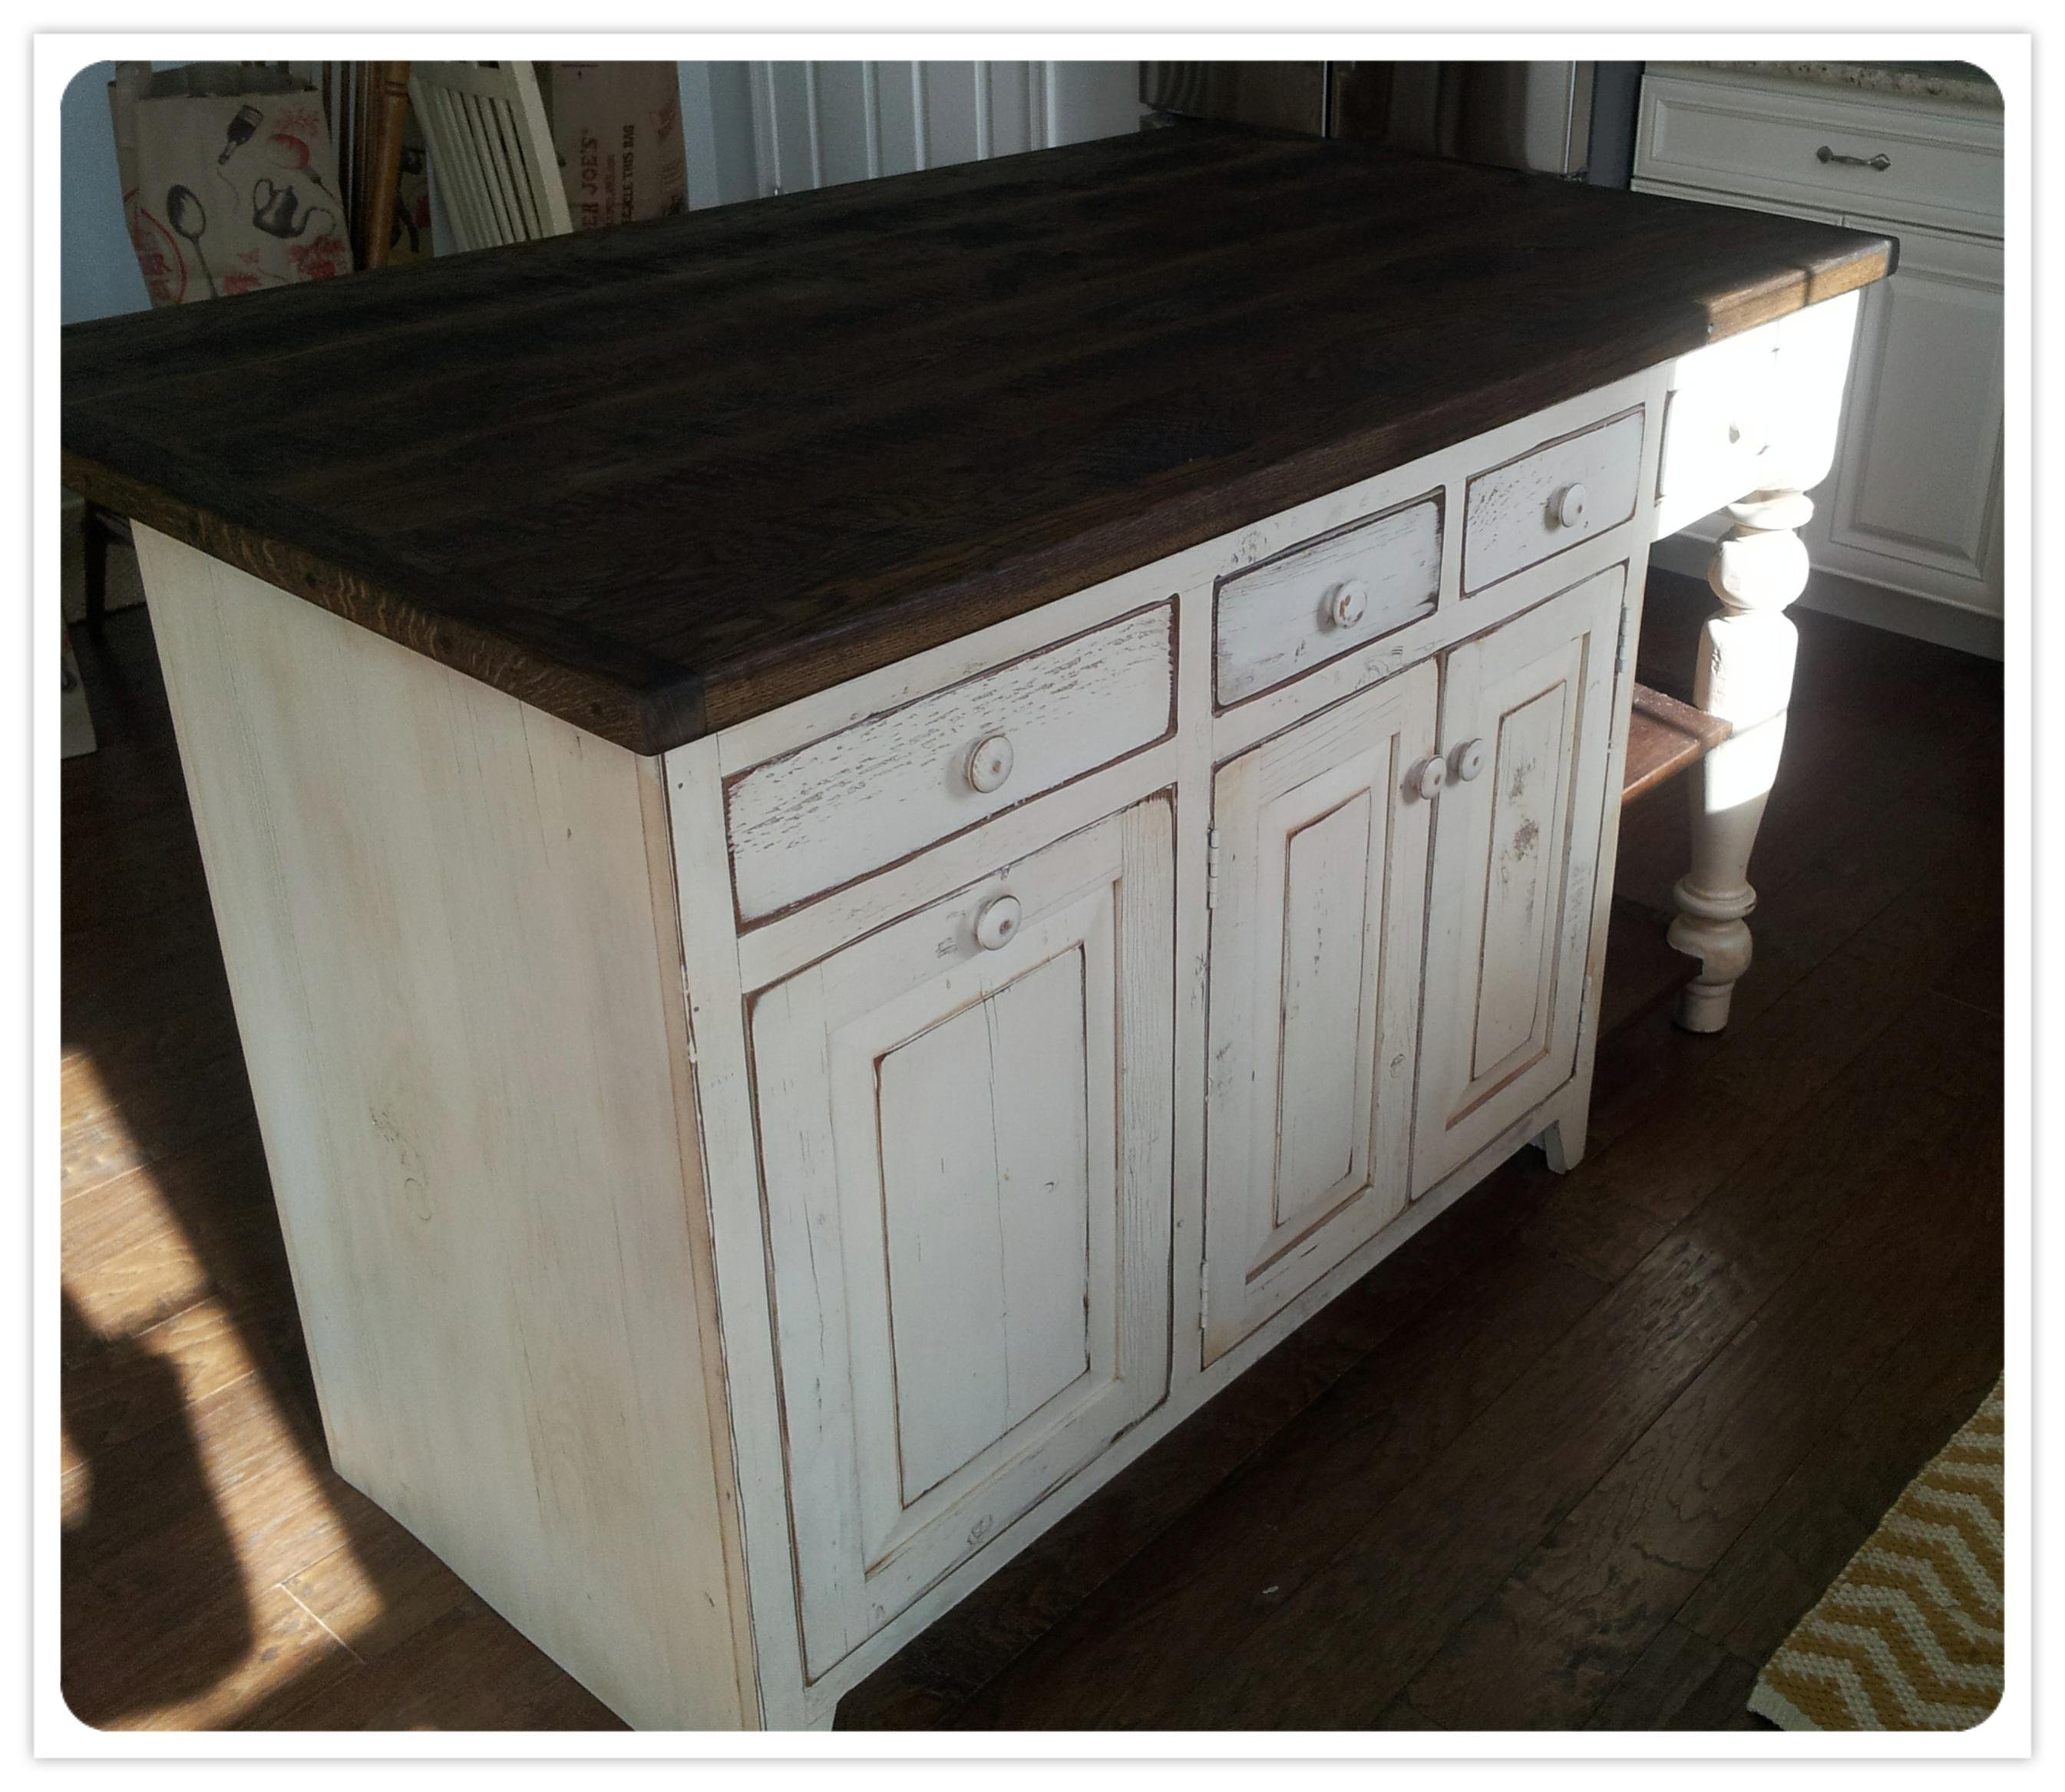 6 Ft Kitchen Island: Reclaimed Wood Kitchen Island